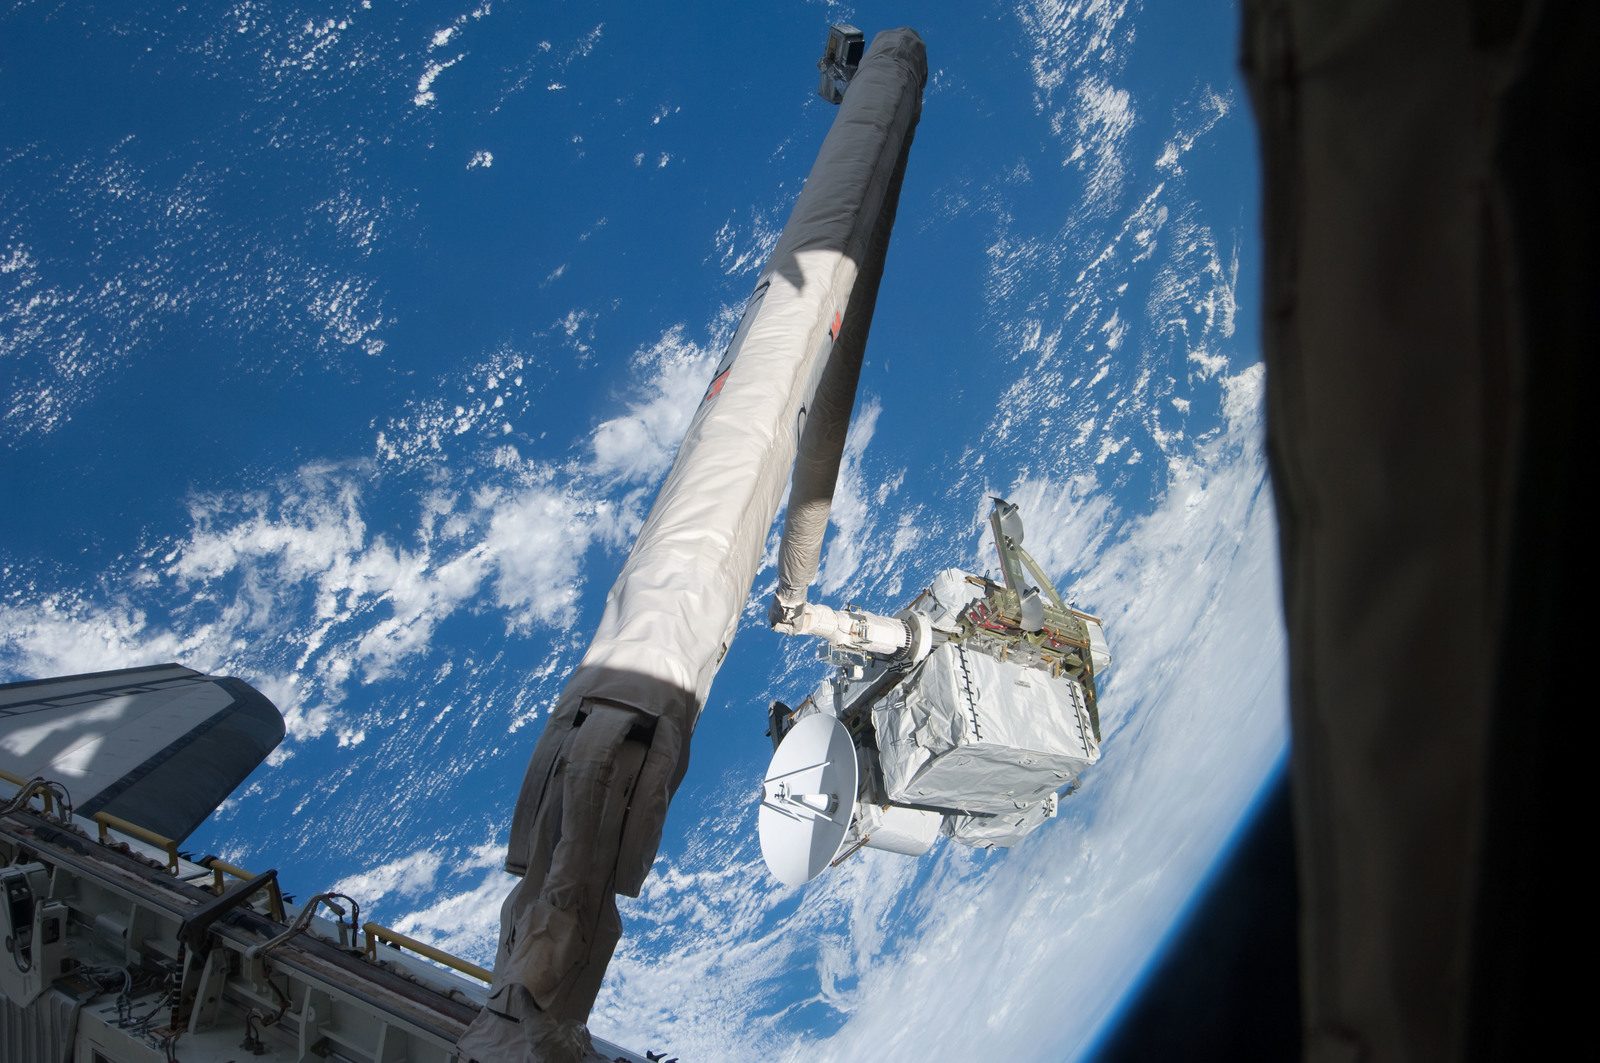 S127E006931 - STS-127 - SRMS maneuvers the ICC-VLD during STS-127 / Expedition 20 Joint Operations